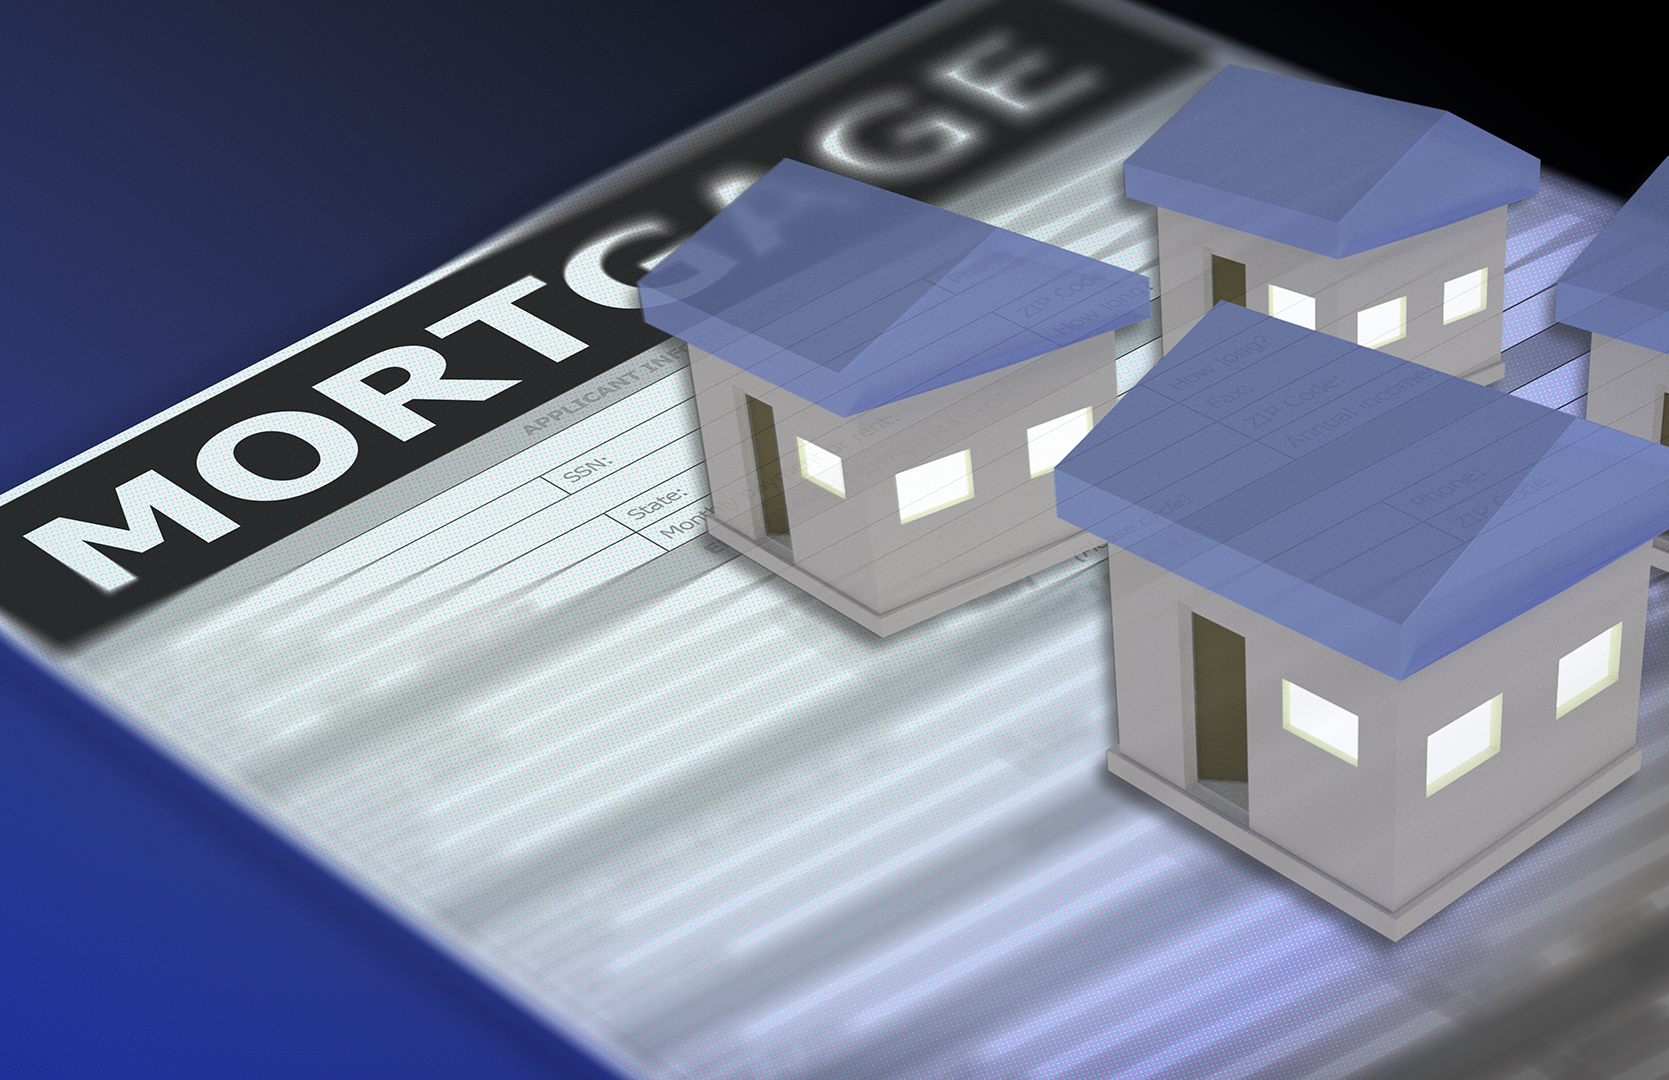 Stock graphic depicting a mortgage loan application beneath several small houses.